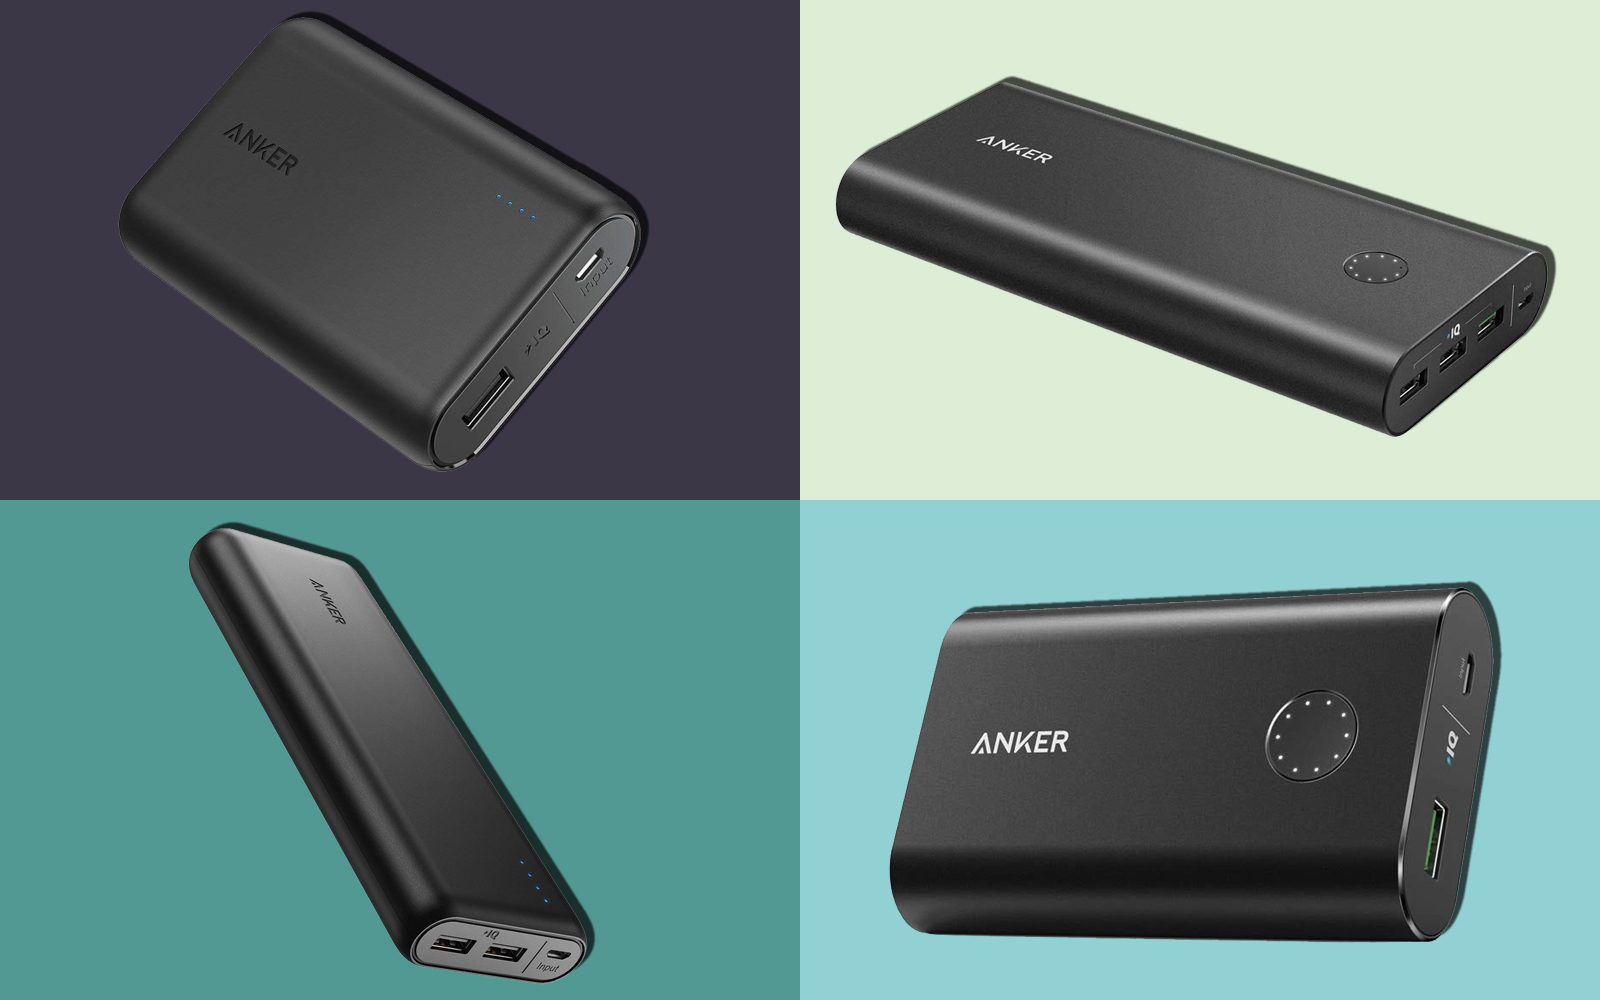 The Best Portable Phone Charger